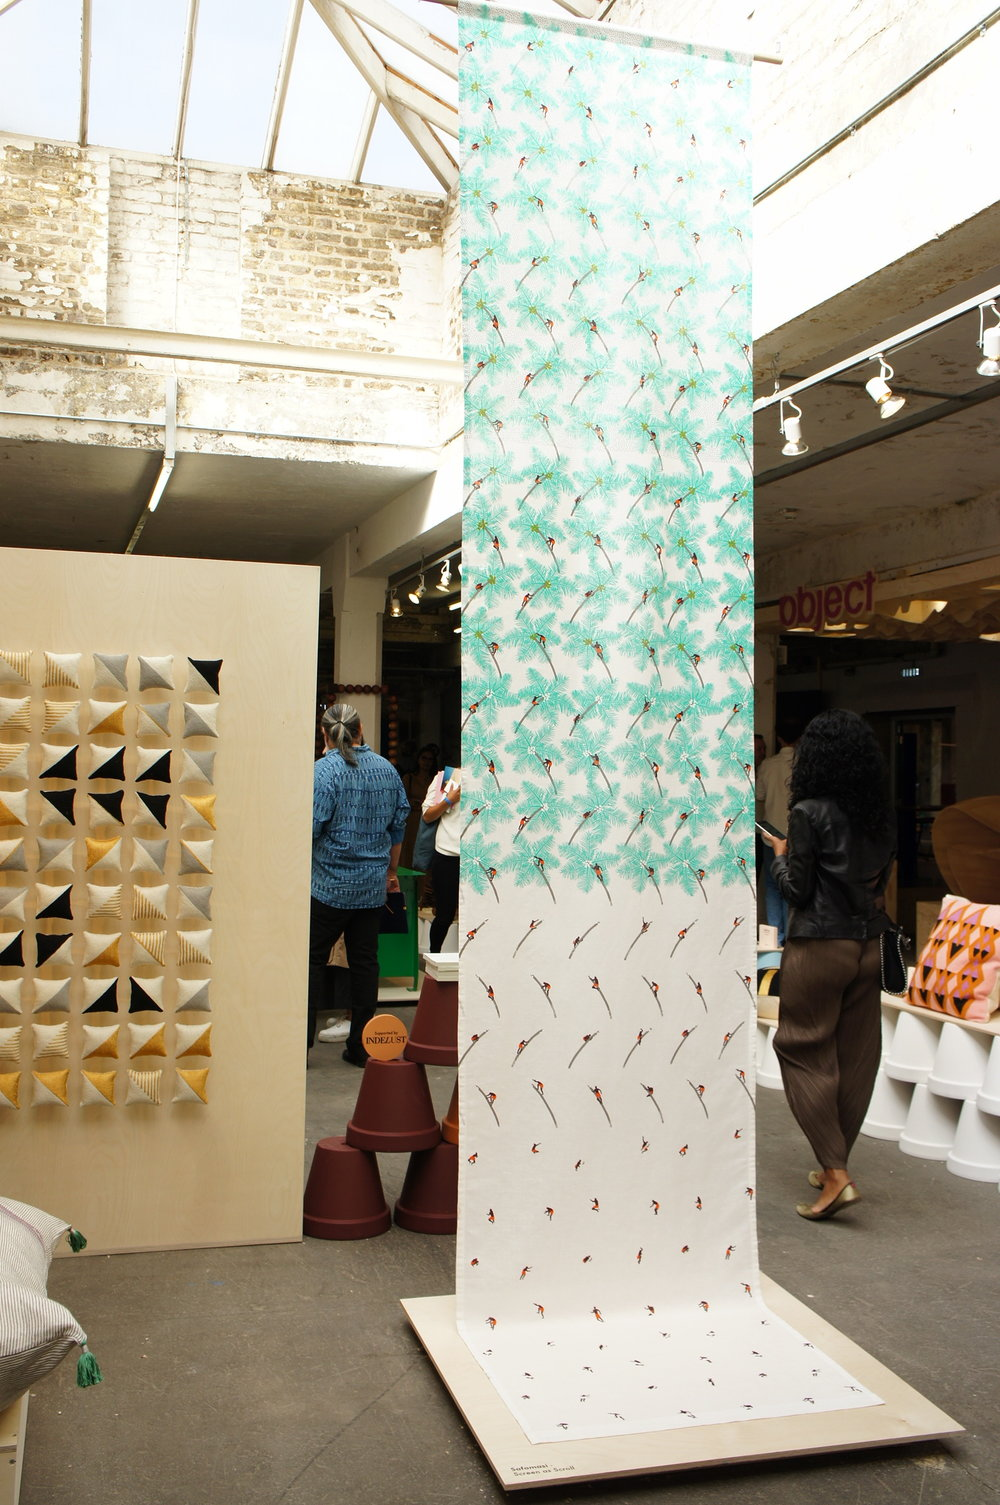 This is India exhibit at London Design Fair